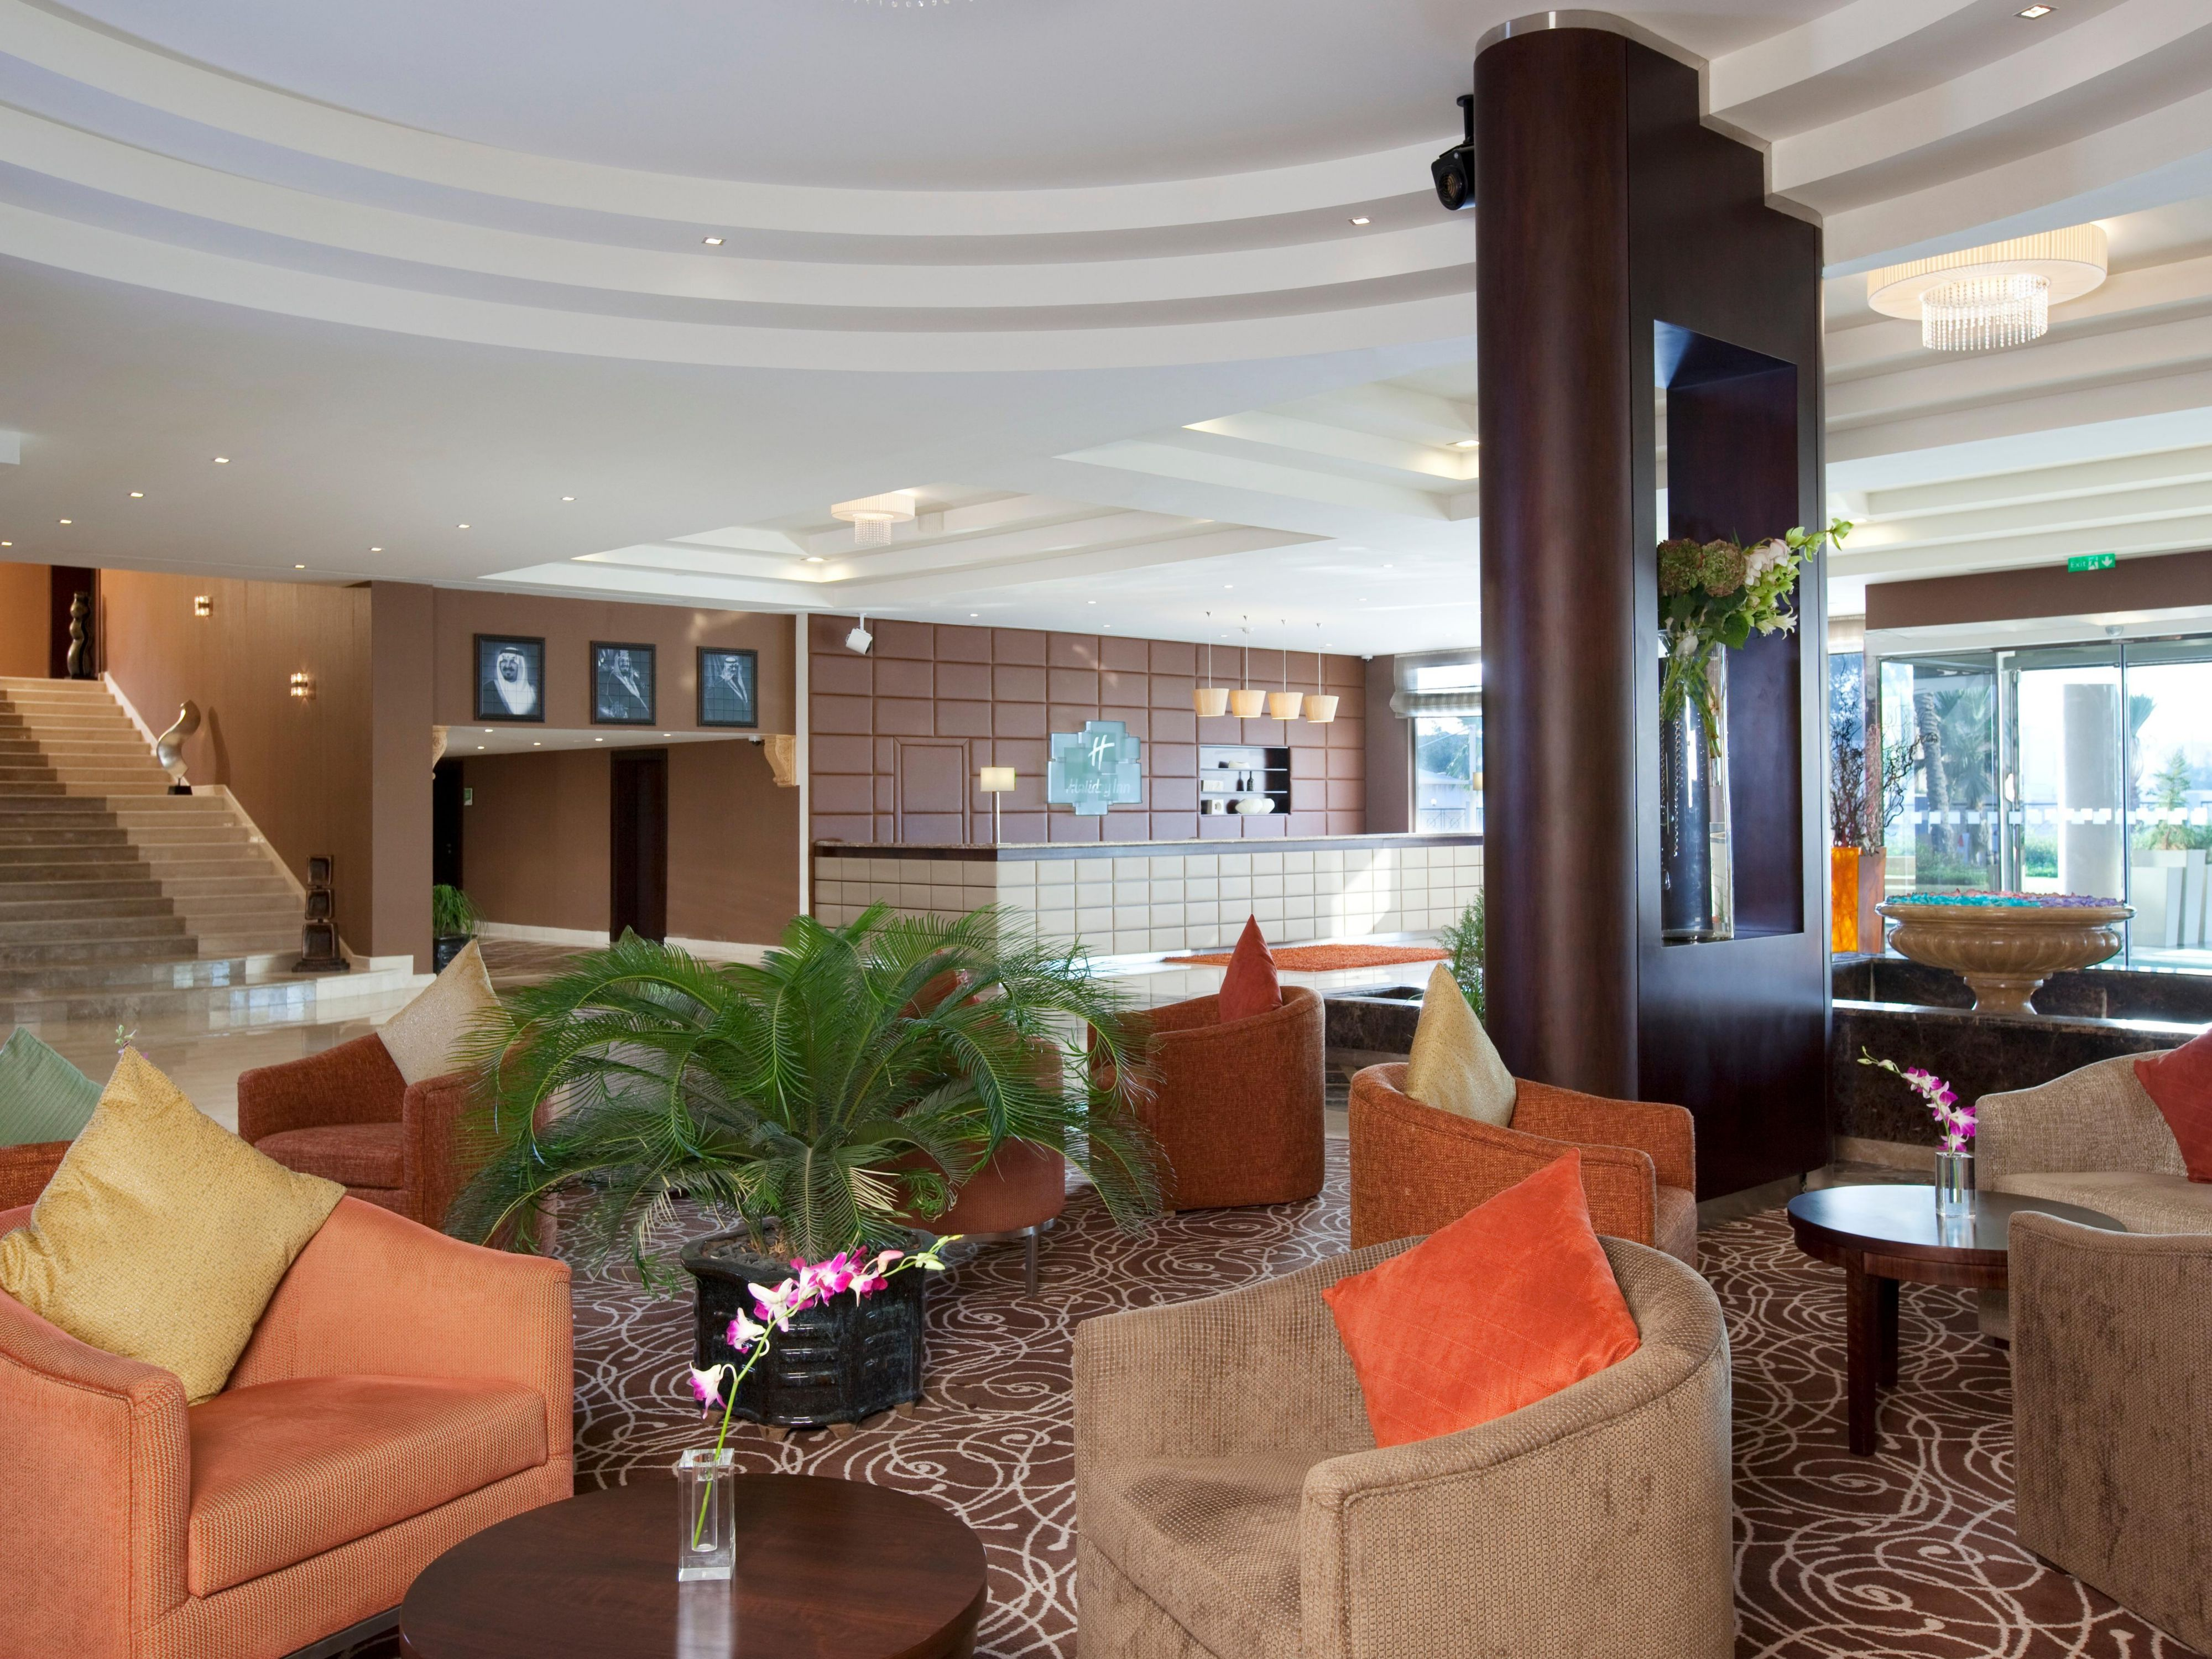 Hotel Lobby with Reception